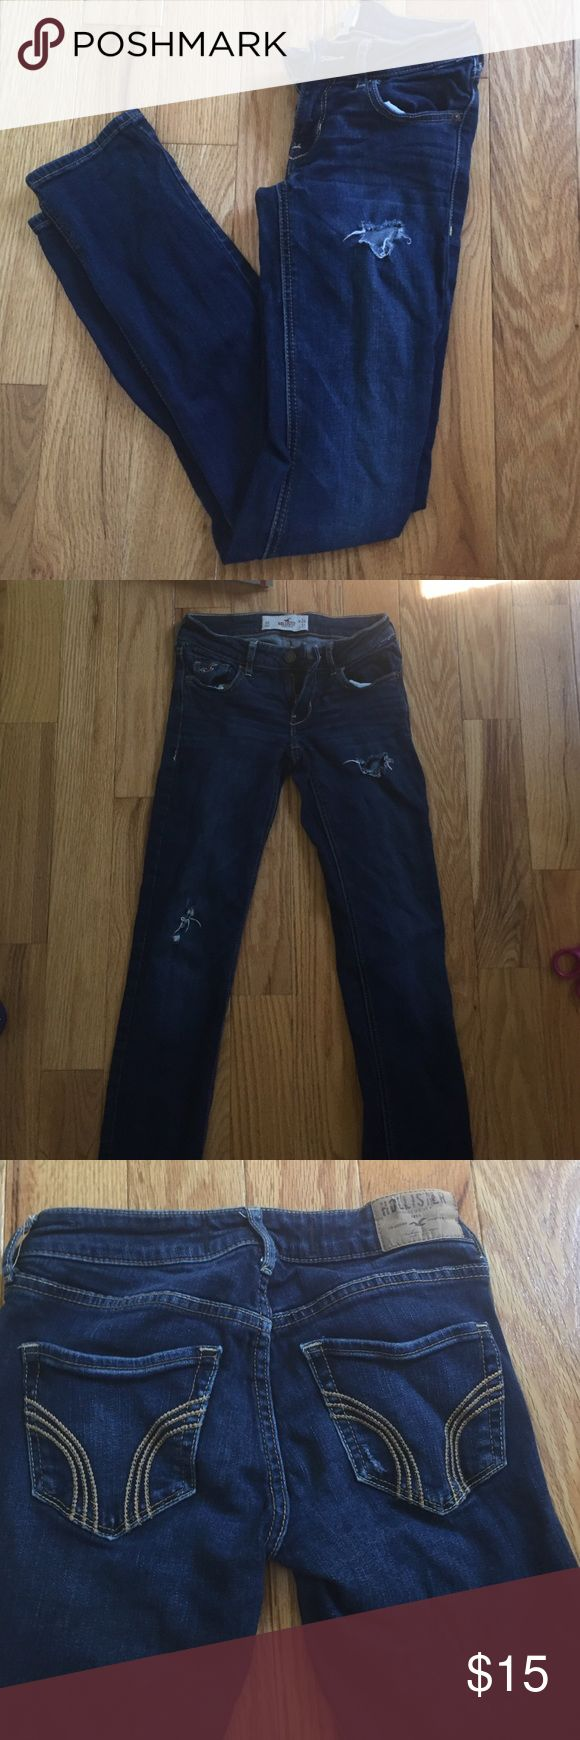 Hollister jenas Hollister dark washed distressed  jeans size 0 short in great condition! Hollister Jeans Skinny